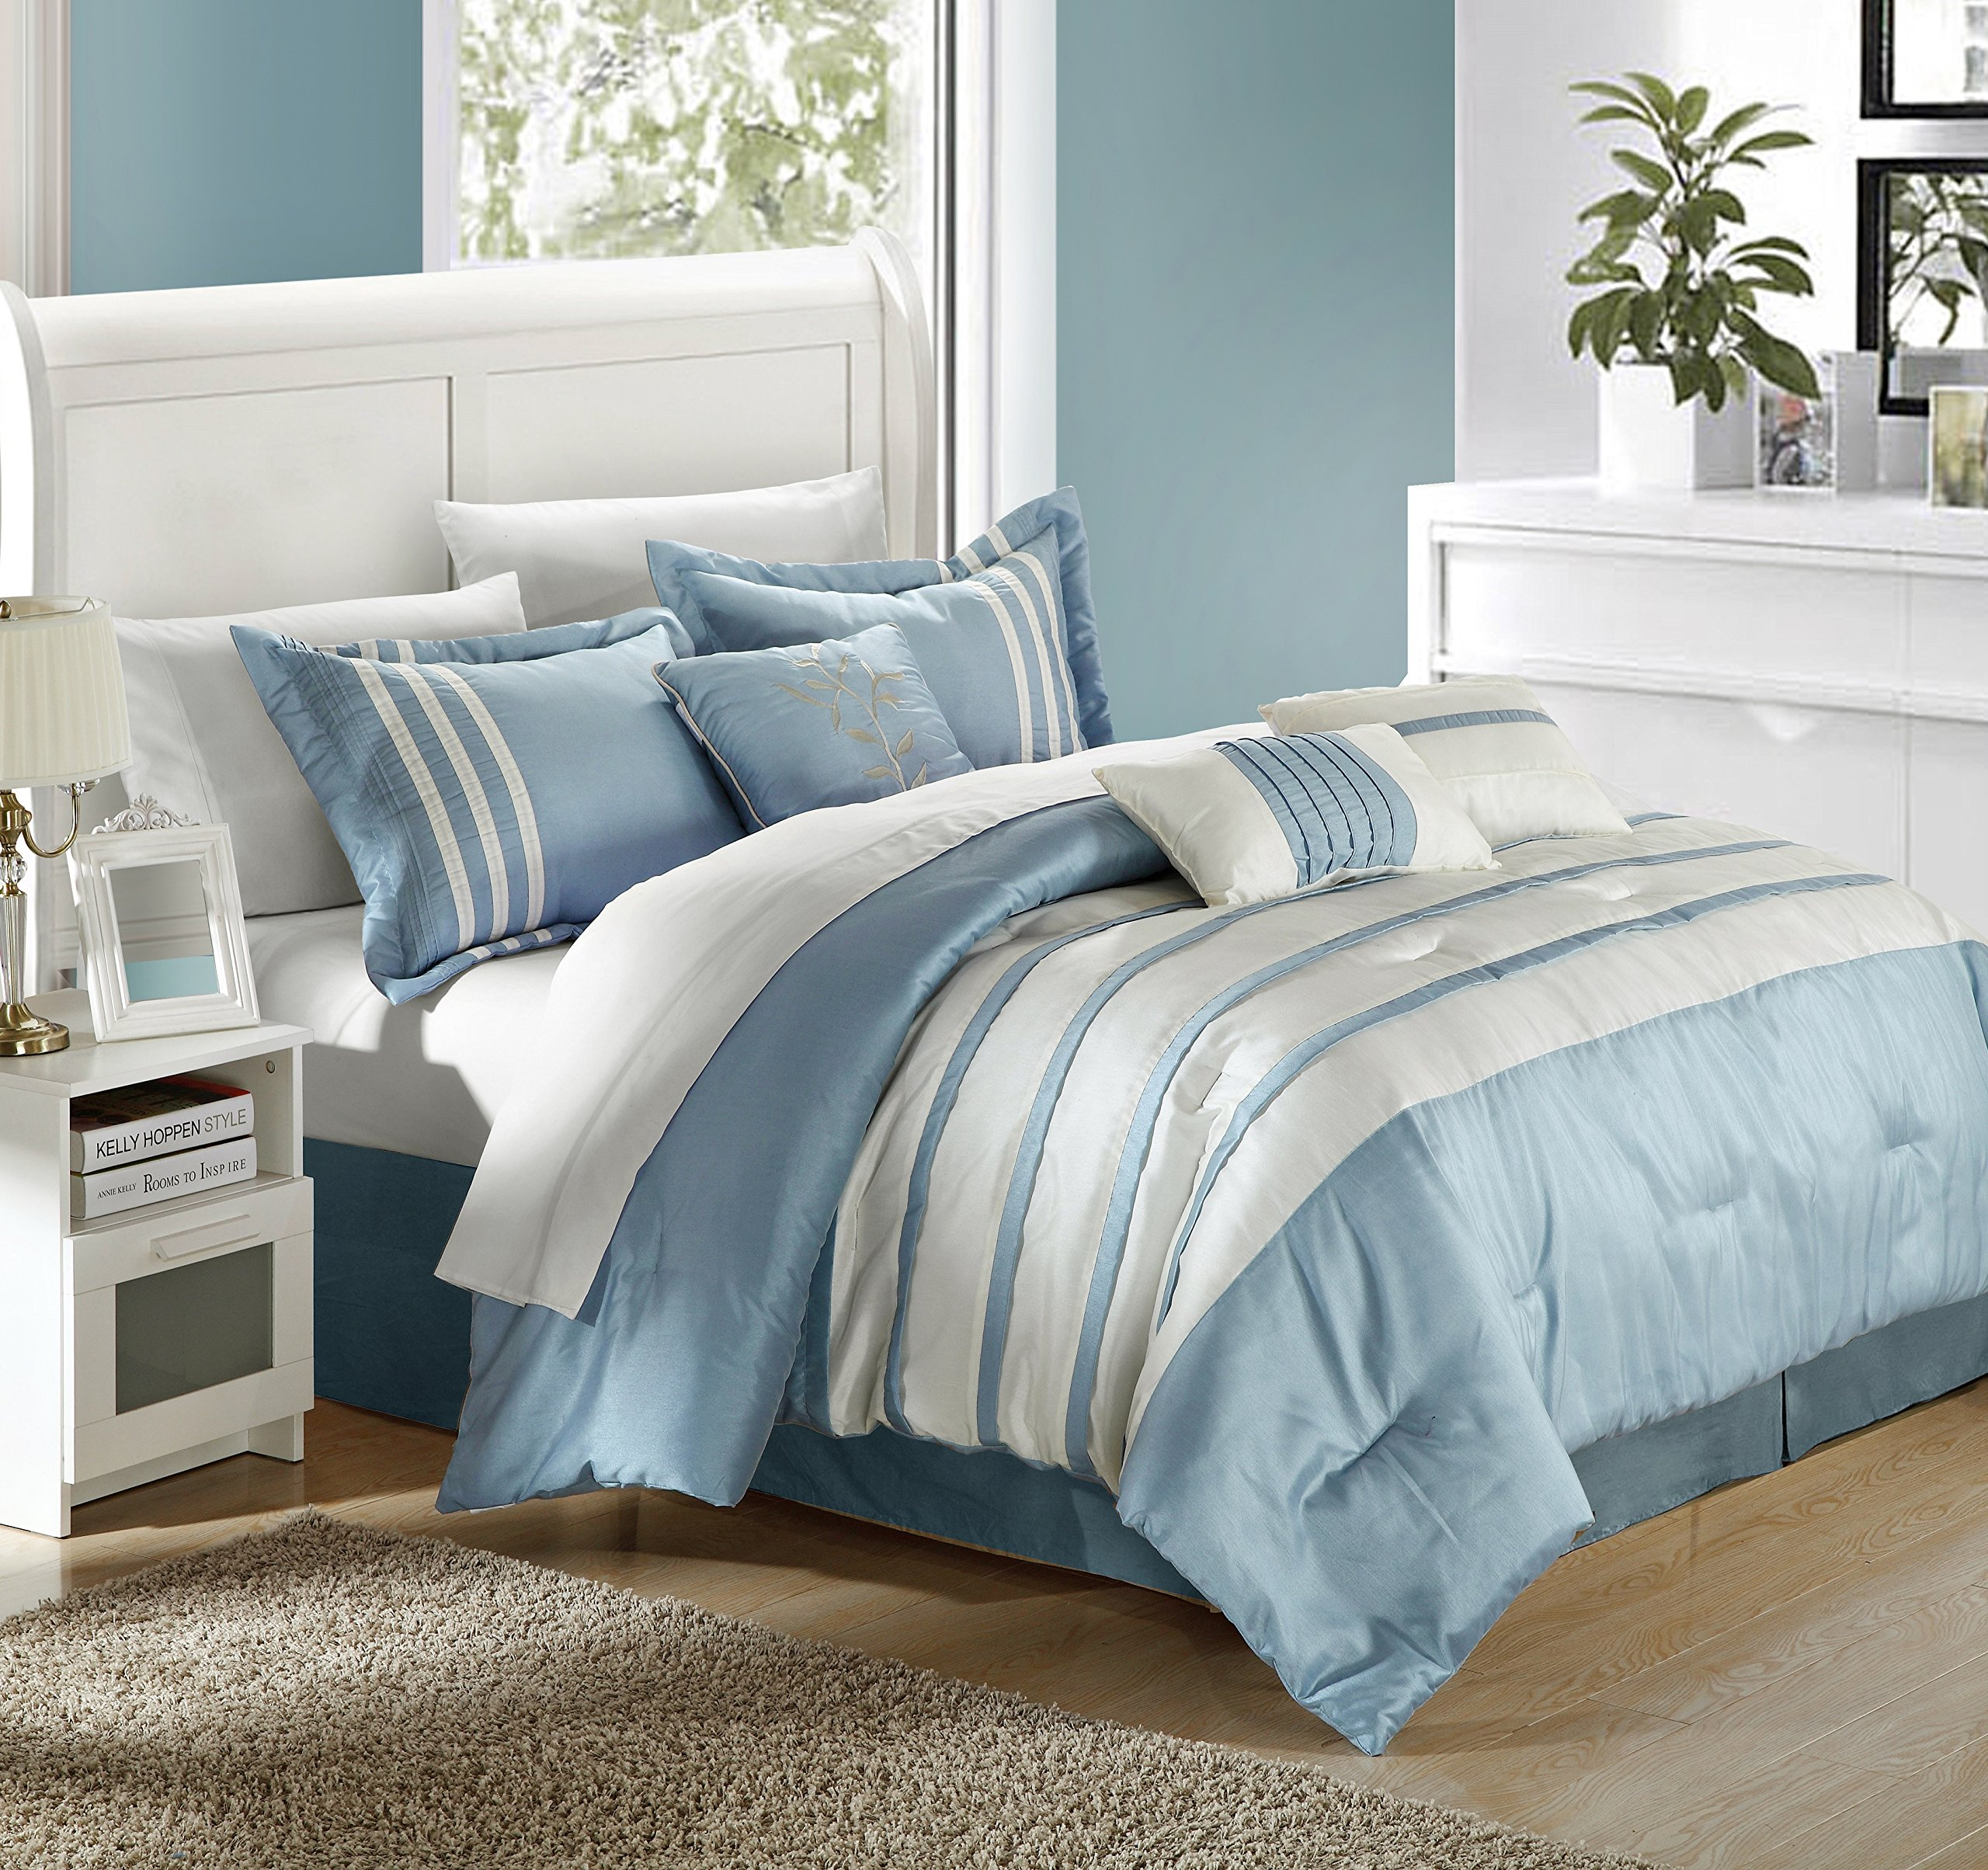 Chic Home Torino Pleated Piecing Luxury Bedding Collection 7-Piece Comforter Set, Queen, Blue